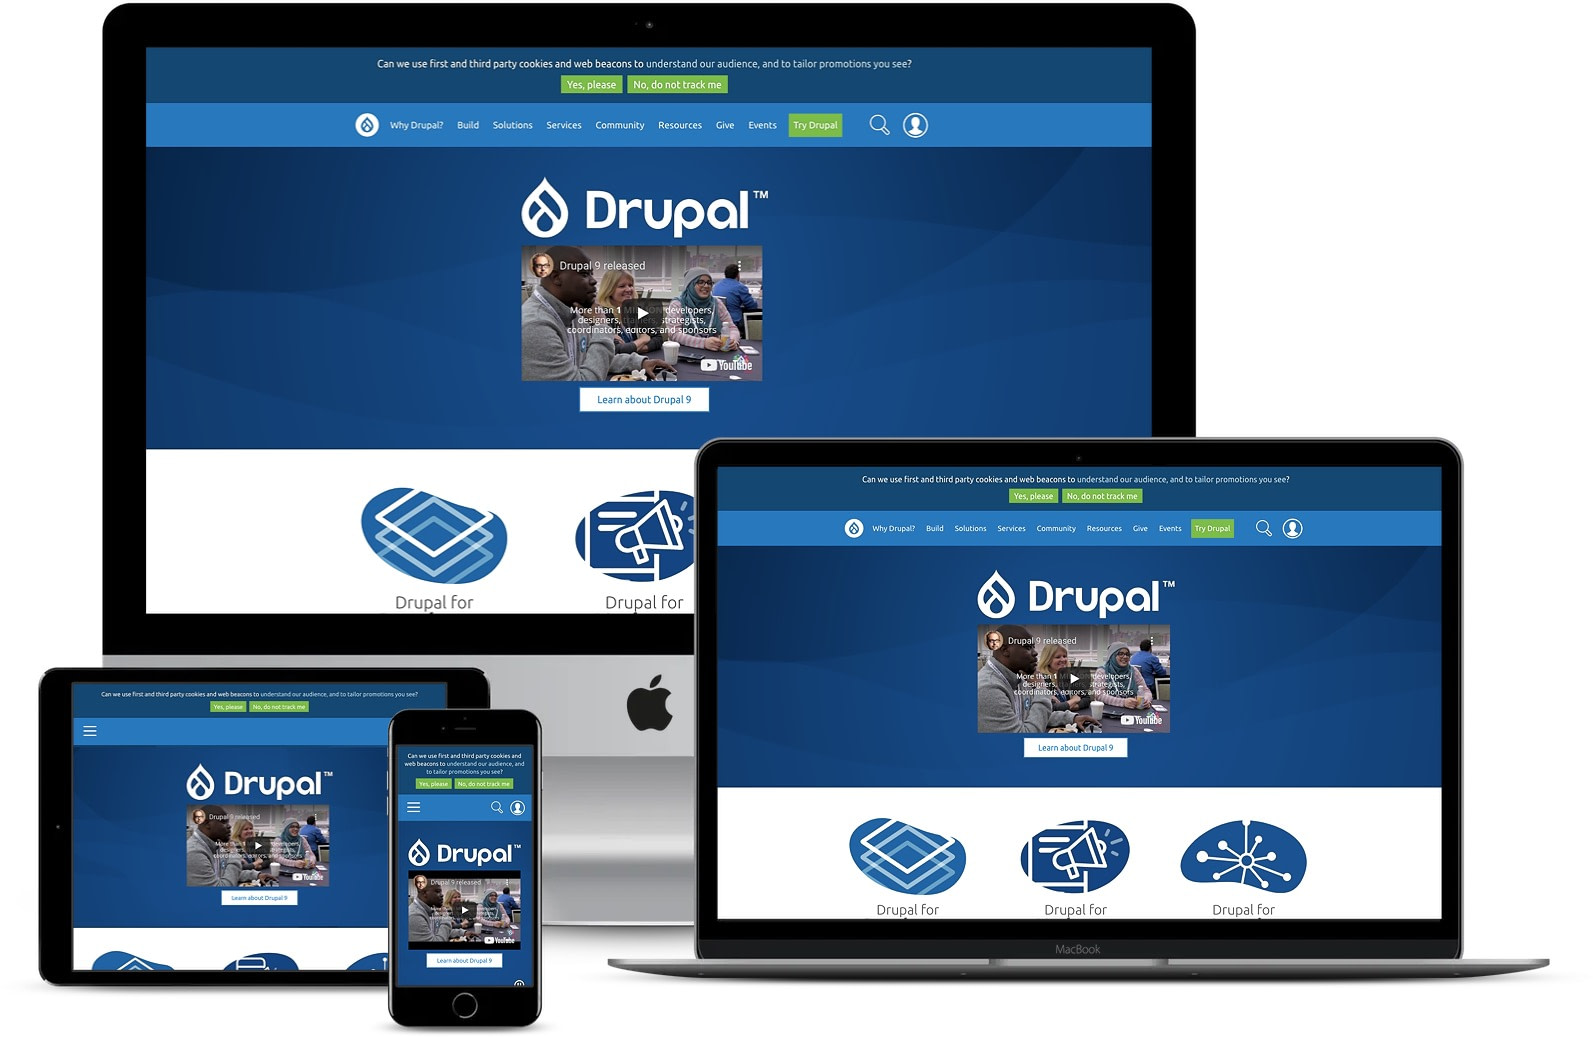 Drupal is considered to be one of the best CMS